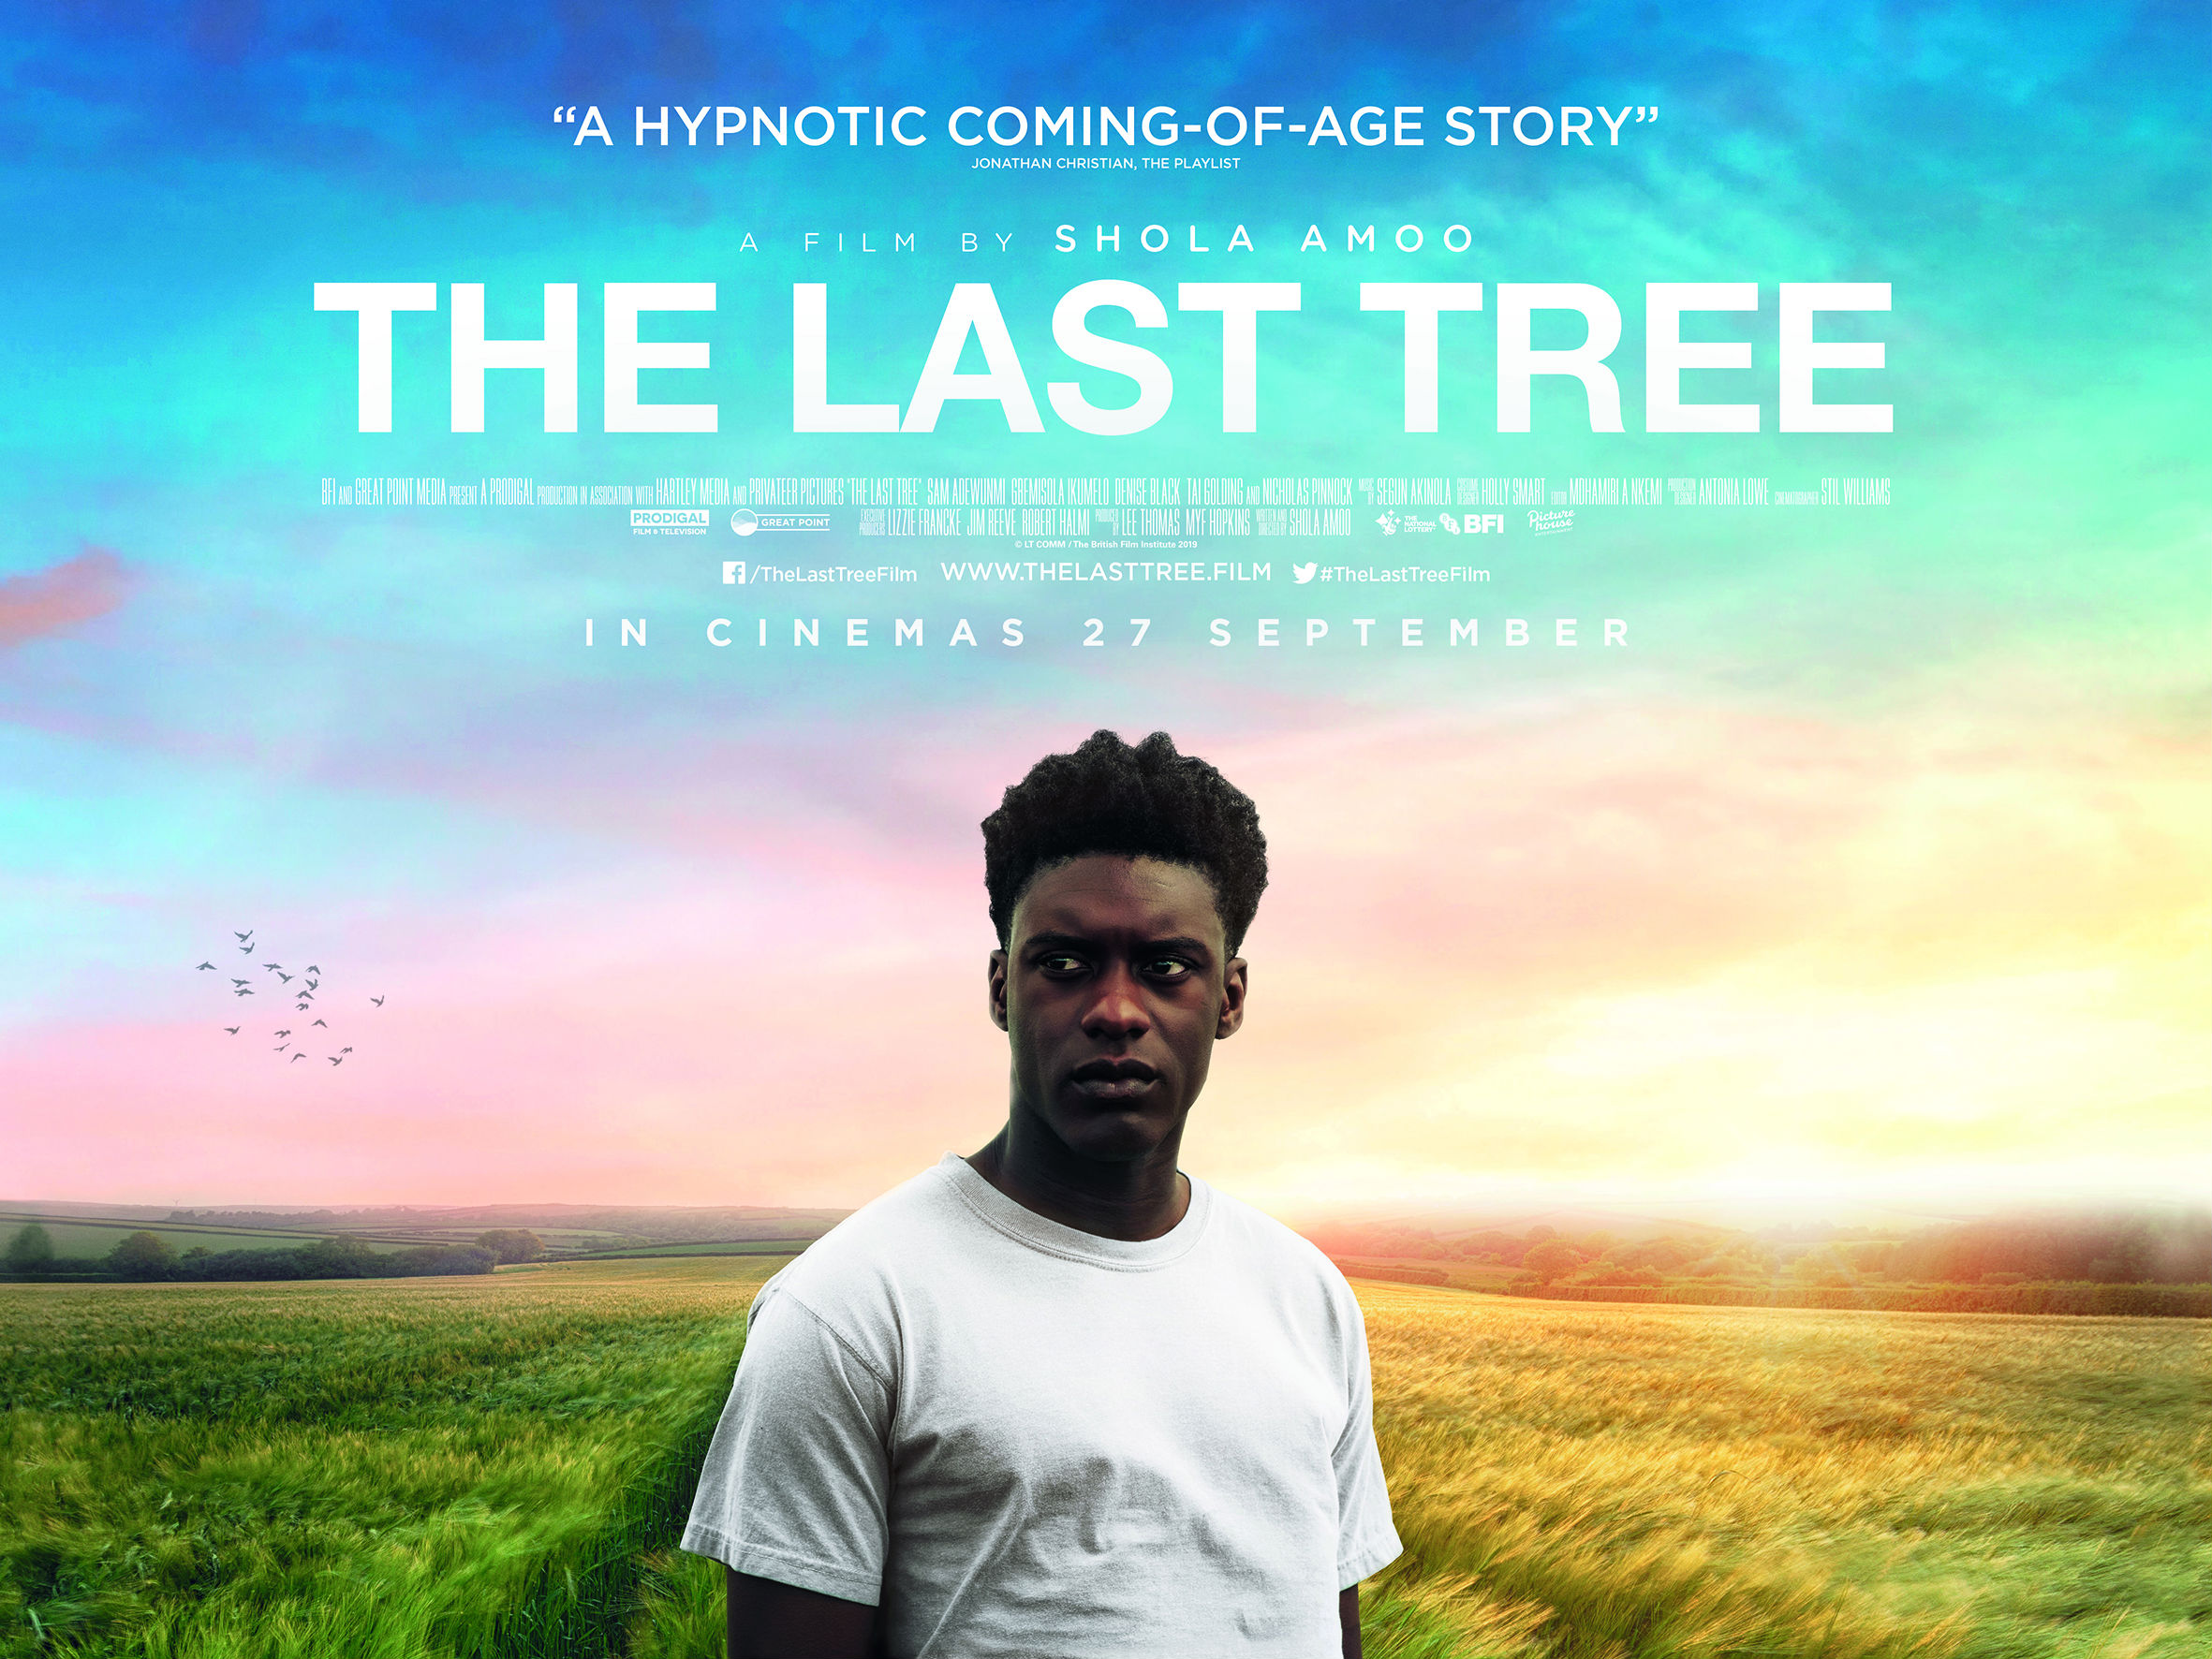 Angela Nicholas Movies new poster & release date for director shola amoo's the last